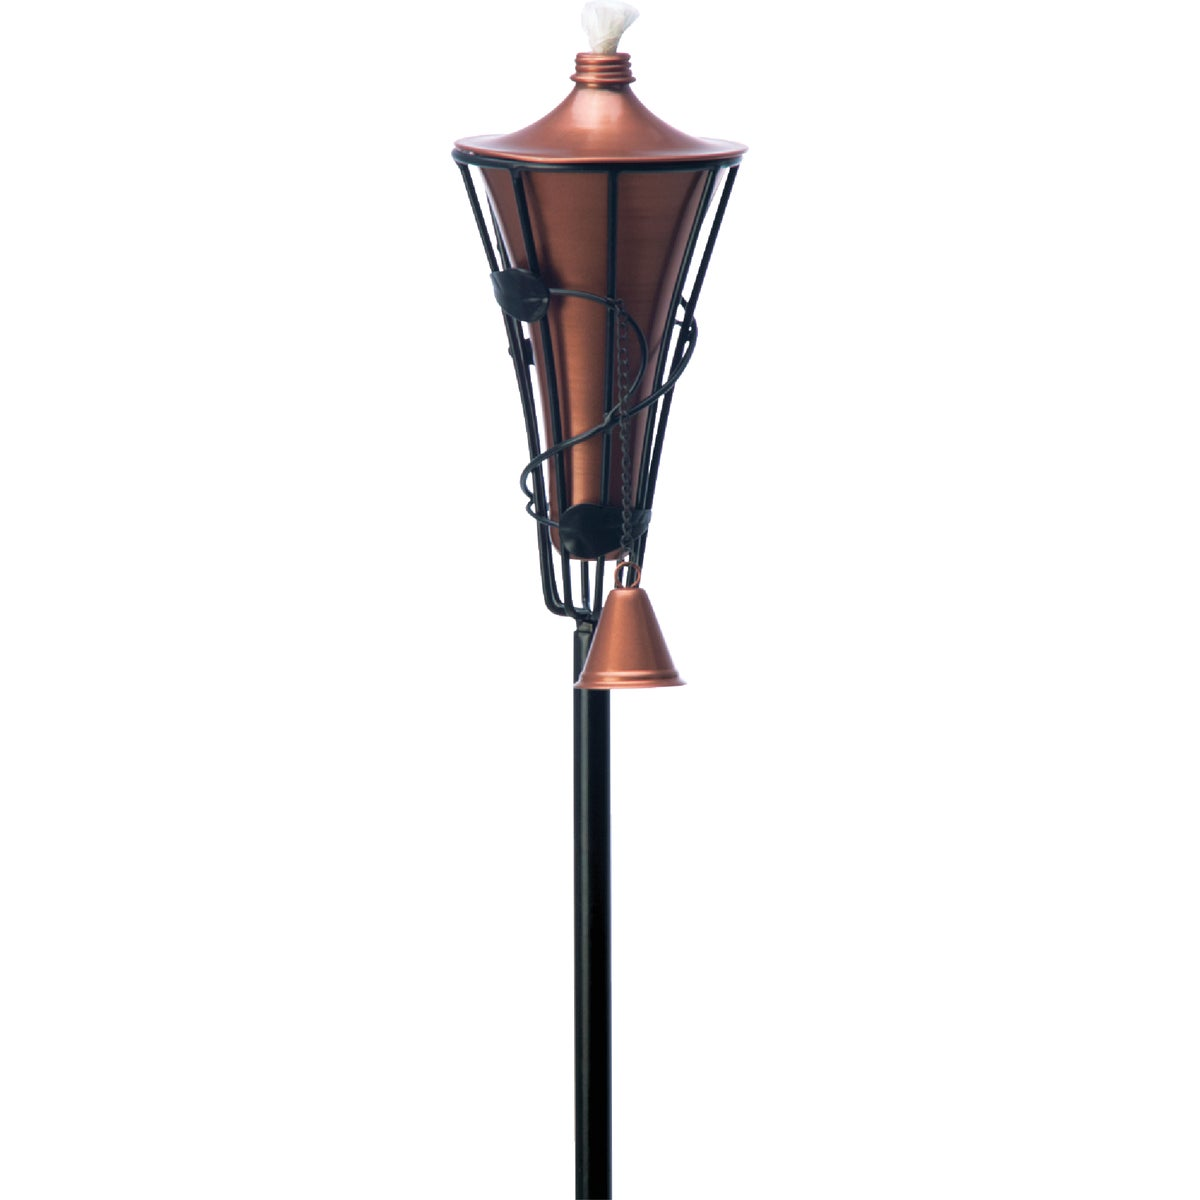 5' COPPER METAL TORCH